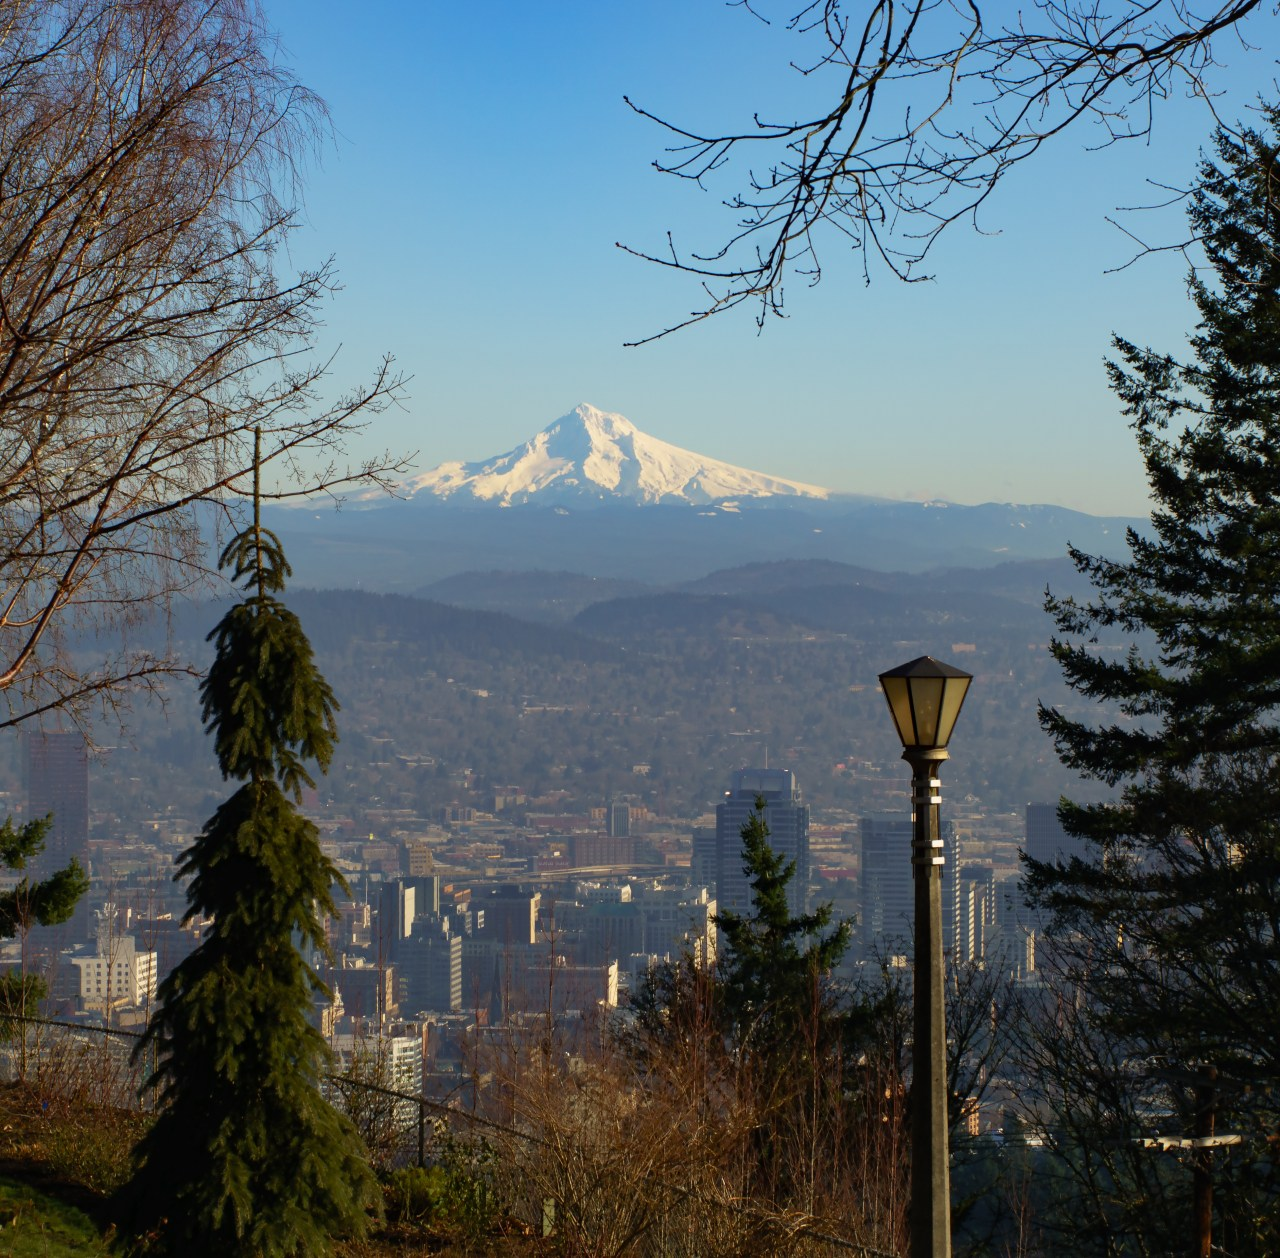 Portland and Mt Hood as seen from the Pittock Mansion